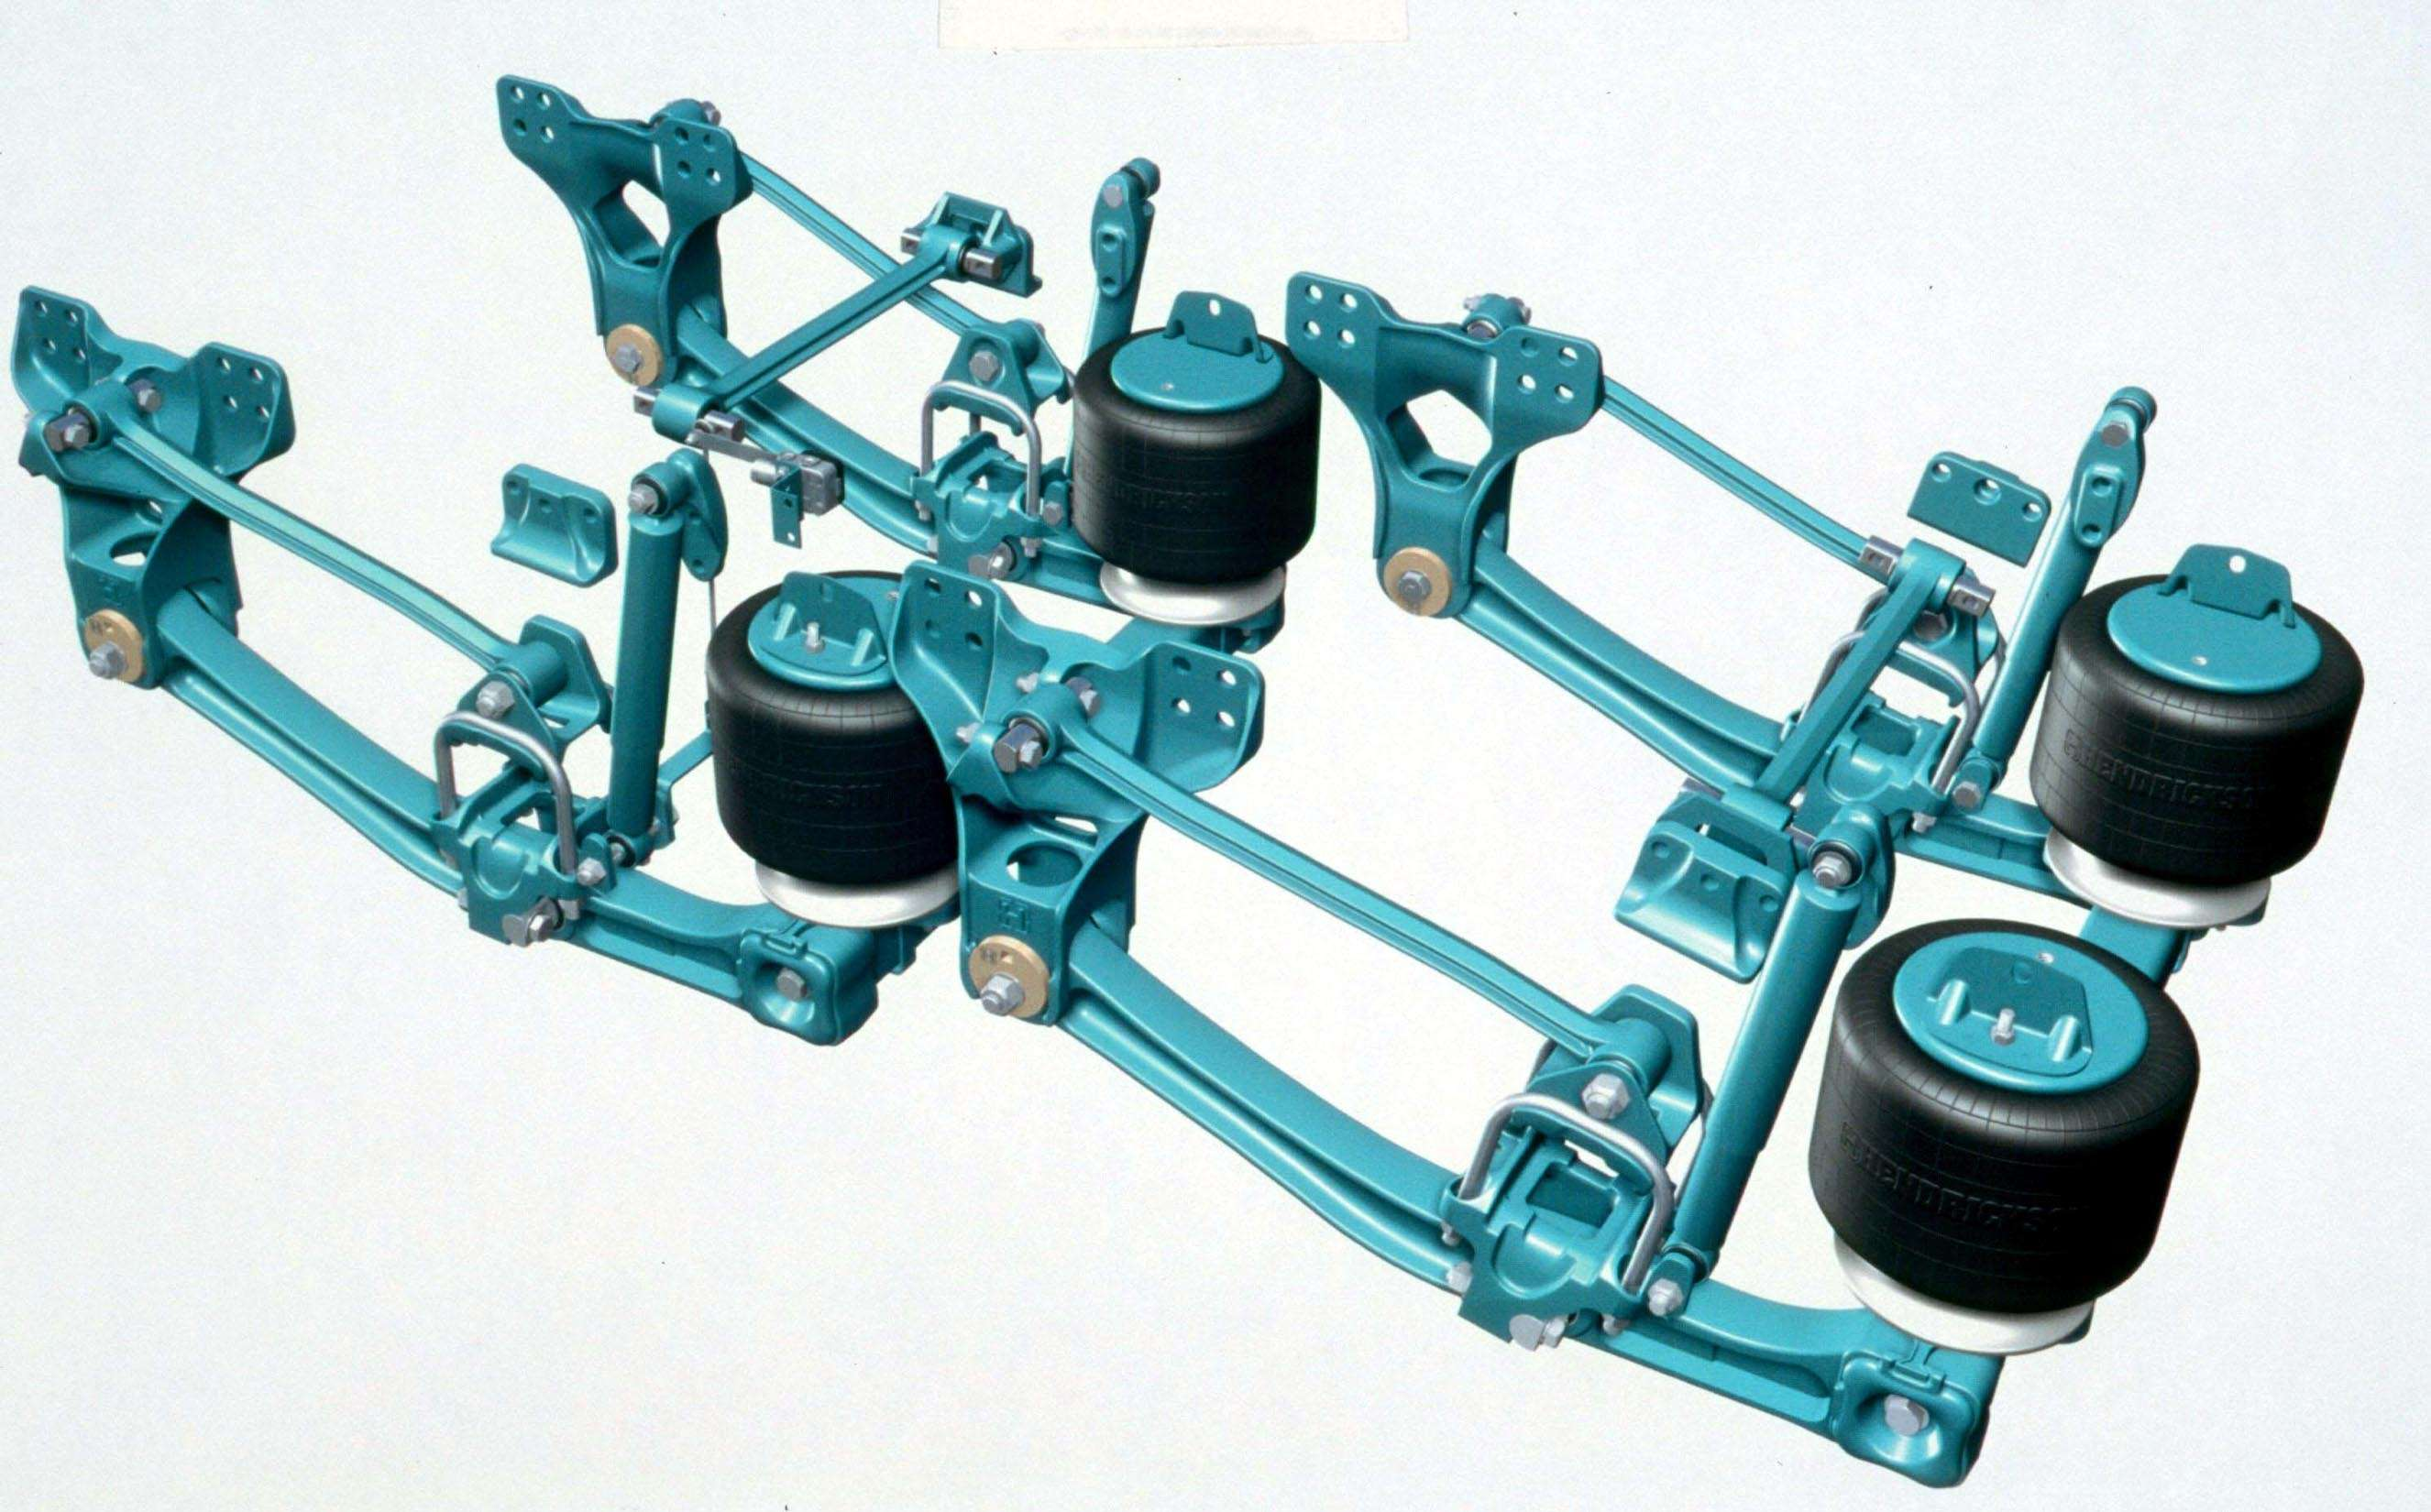 automotive suspension systems market by vehicle Shop the industry's largest selection of chassis, steering, & suspension components at jegscom guaranteed lowest price.